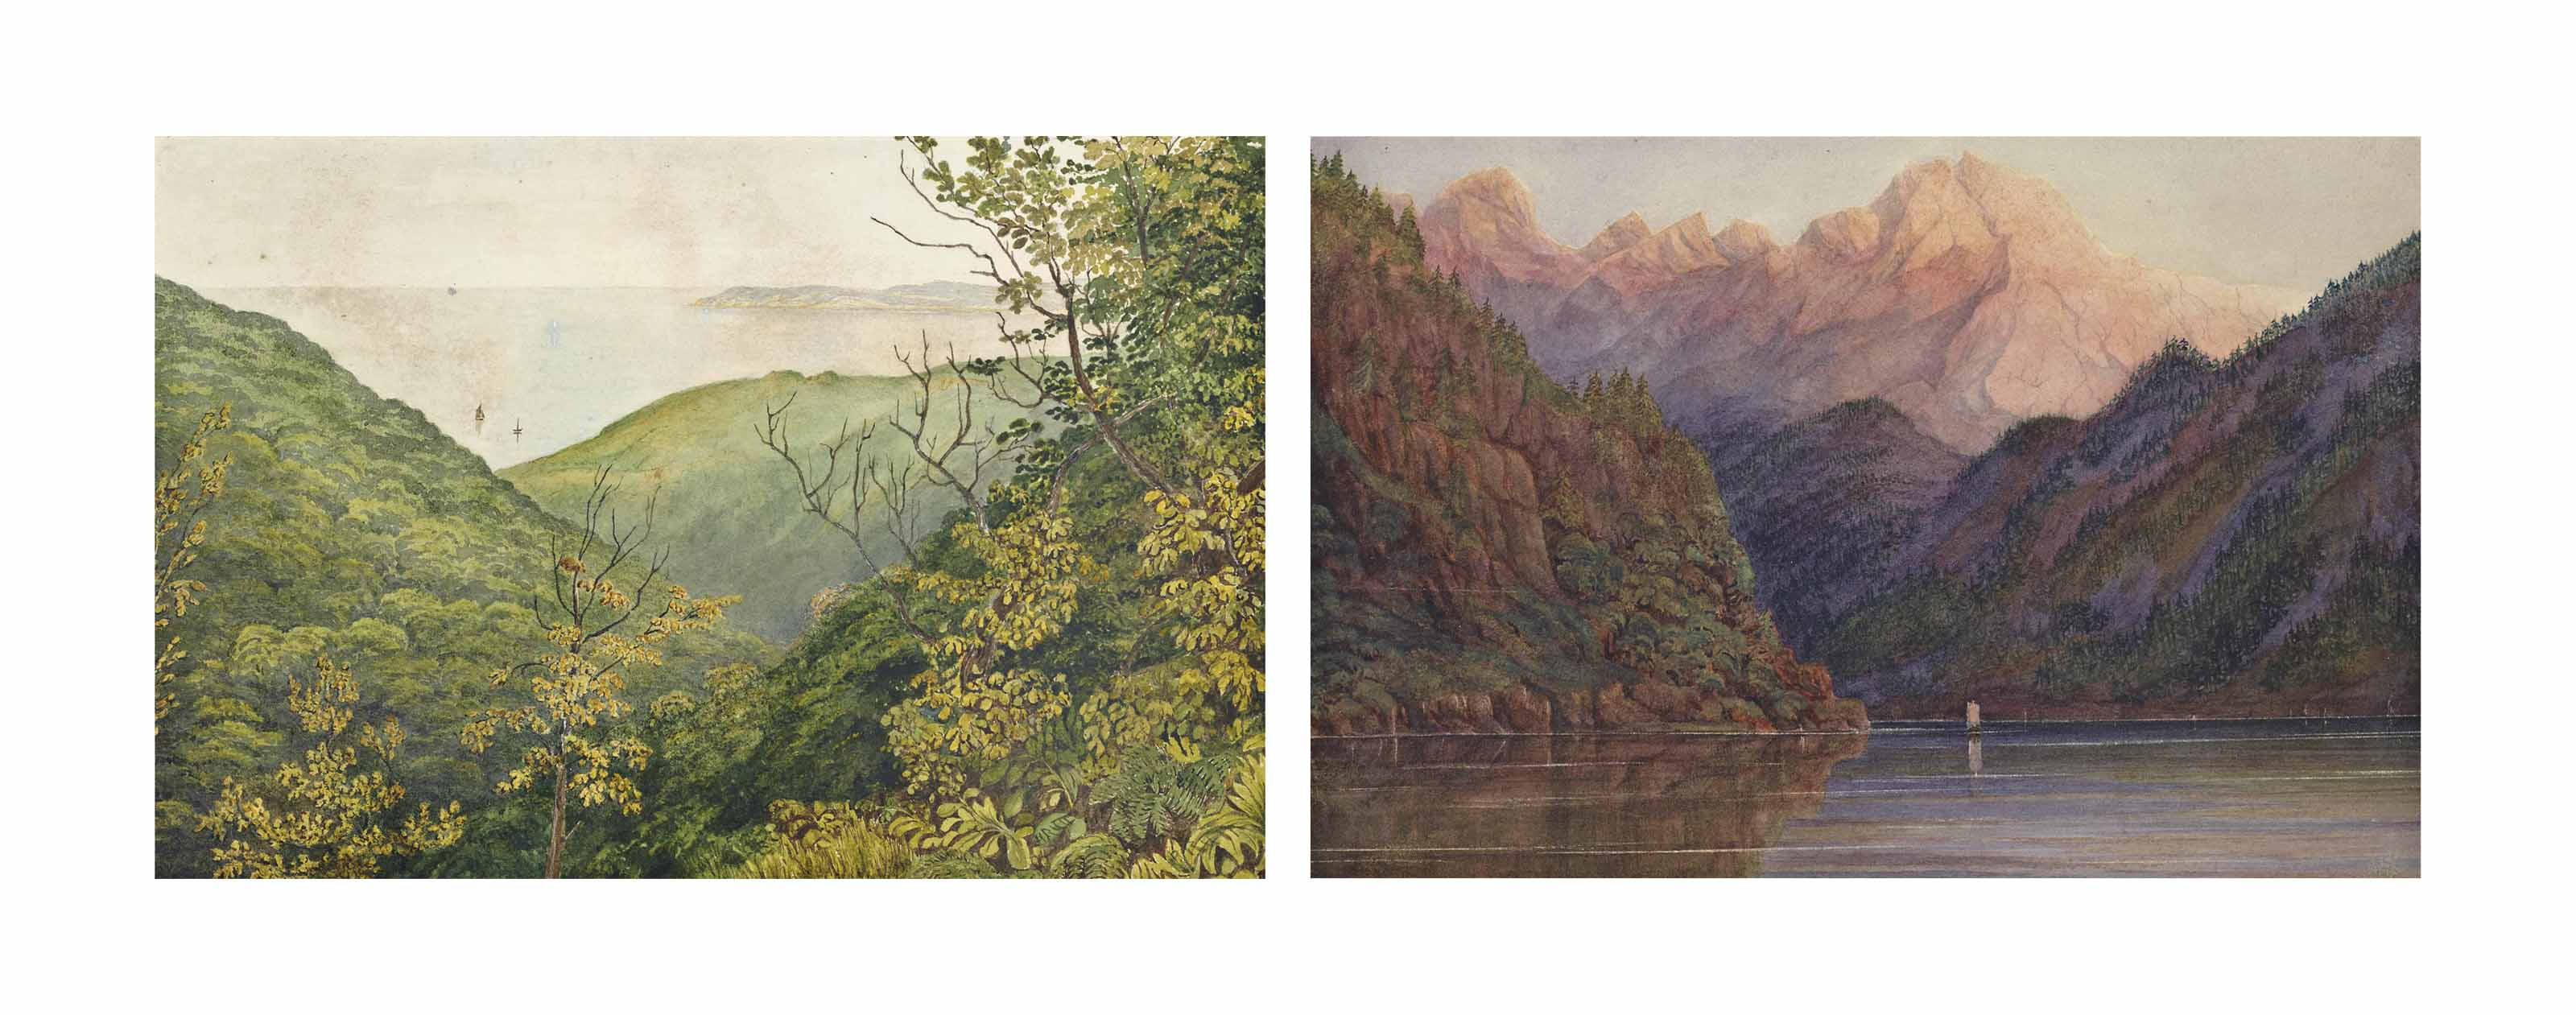 An album of approximately 110 watercolours of tours of the British Isles and Switzerland from 1842-1864; and ten further framed views of: Barnstable Bay, Devon (illustrated); Herne Bay, Kent; Lower Clapton Gardens, London; Lake Thun, Evening, Switzerland; Wallenstadt Lake, Switzerland; Lake of Brienz from Griesbach Falls, Switzerland (illustrated) ; Menais Straits from a hill near Beaumaris, Wales; Bedgelert, Vale of Gwynant, Wales; A view of a North Wales pass; and Snowdon from the Vale of Gwynant, Wales